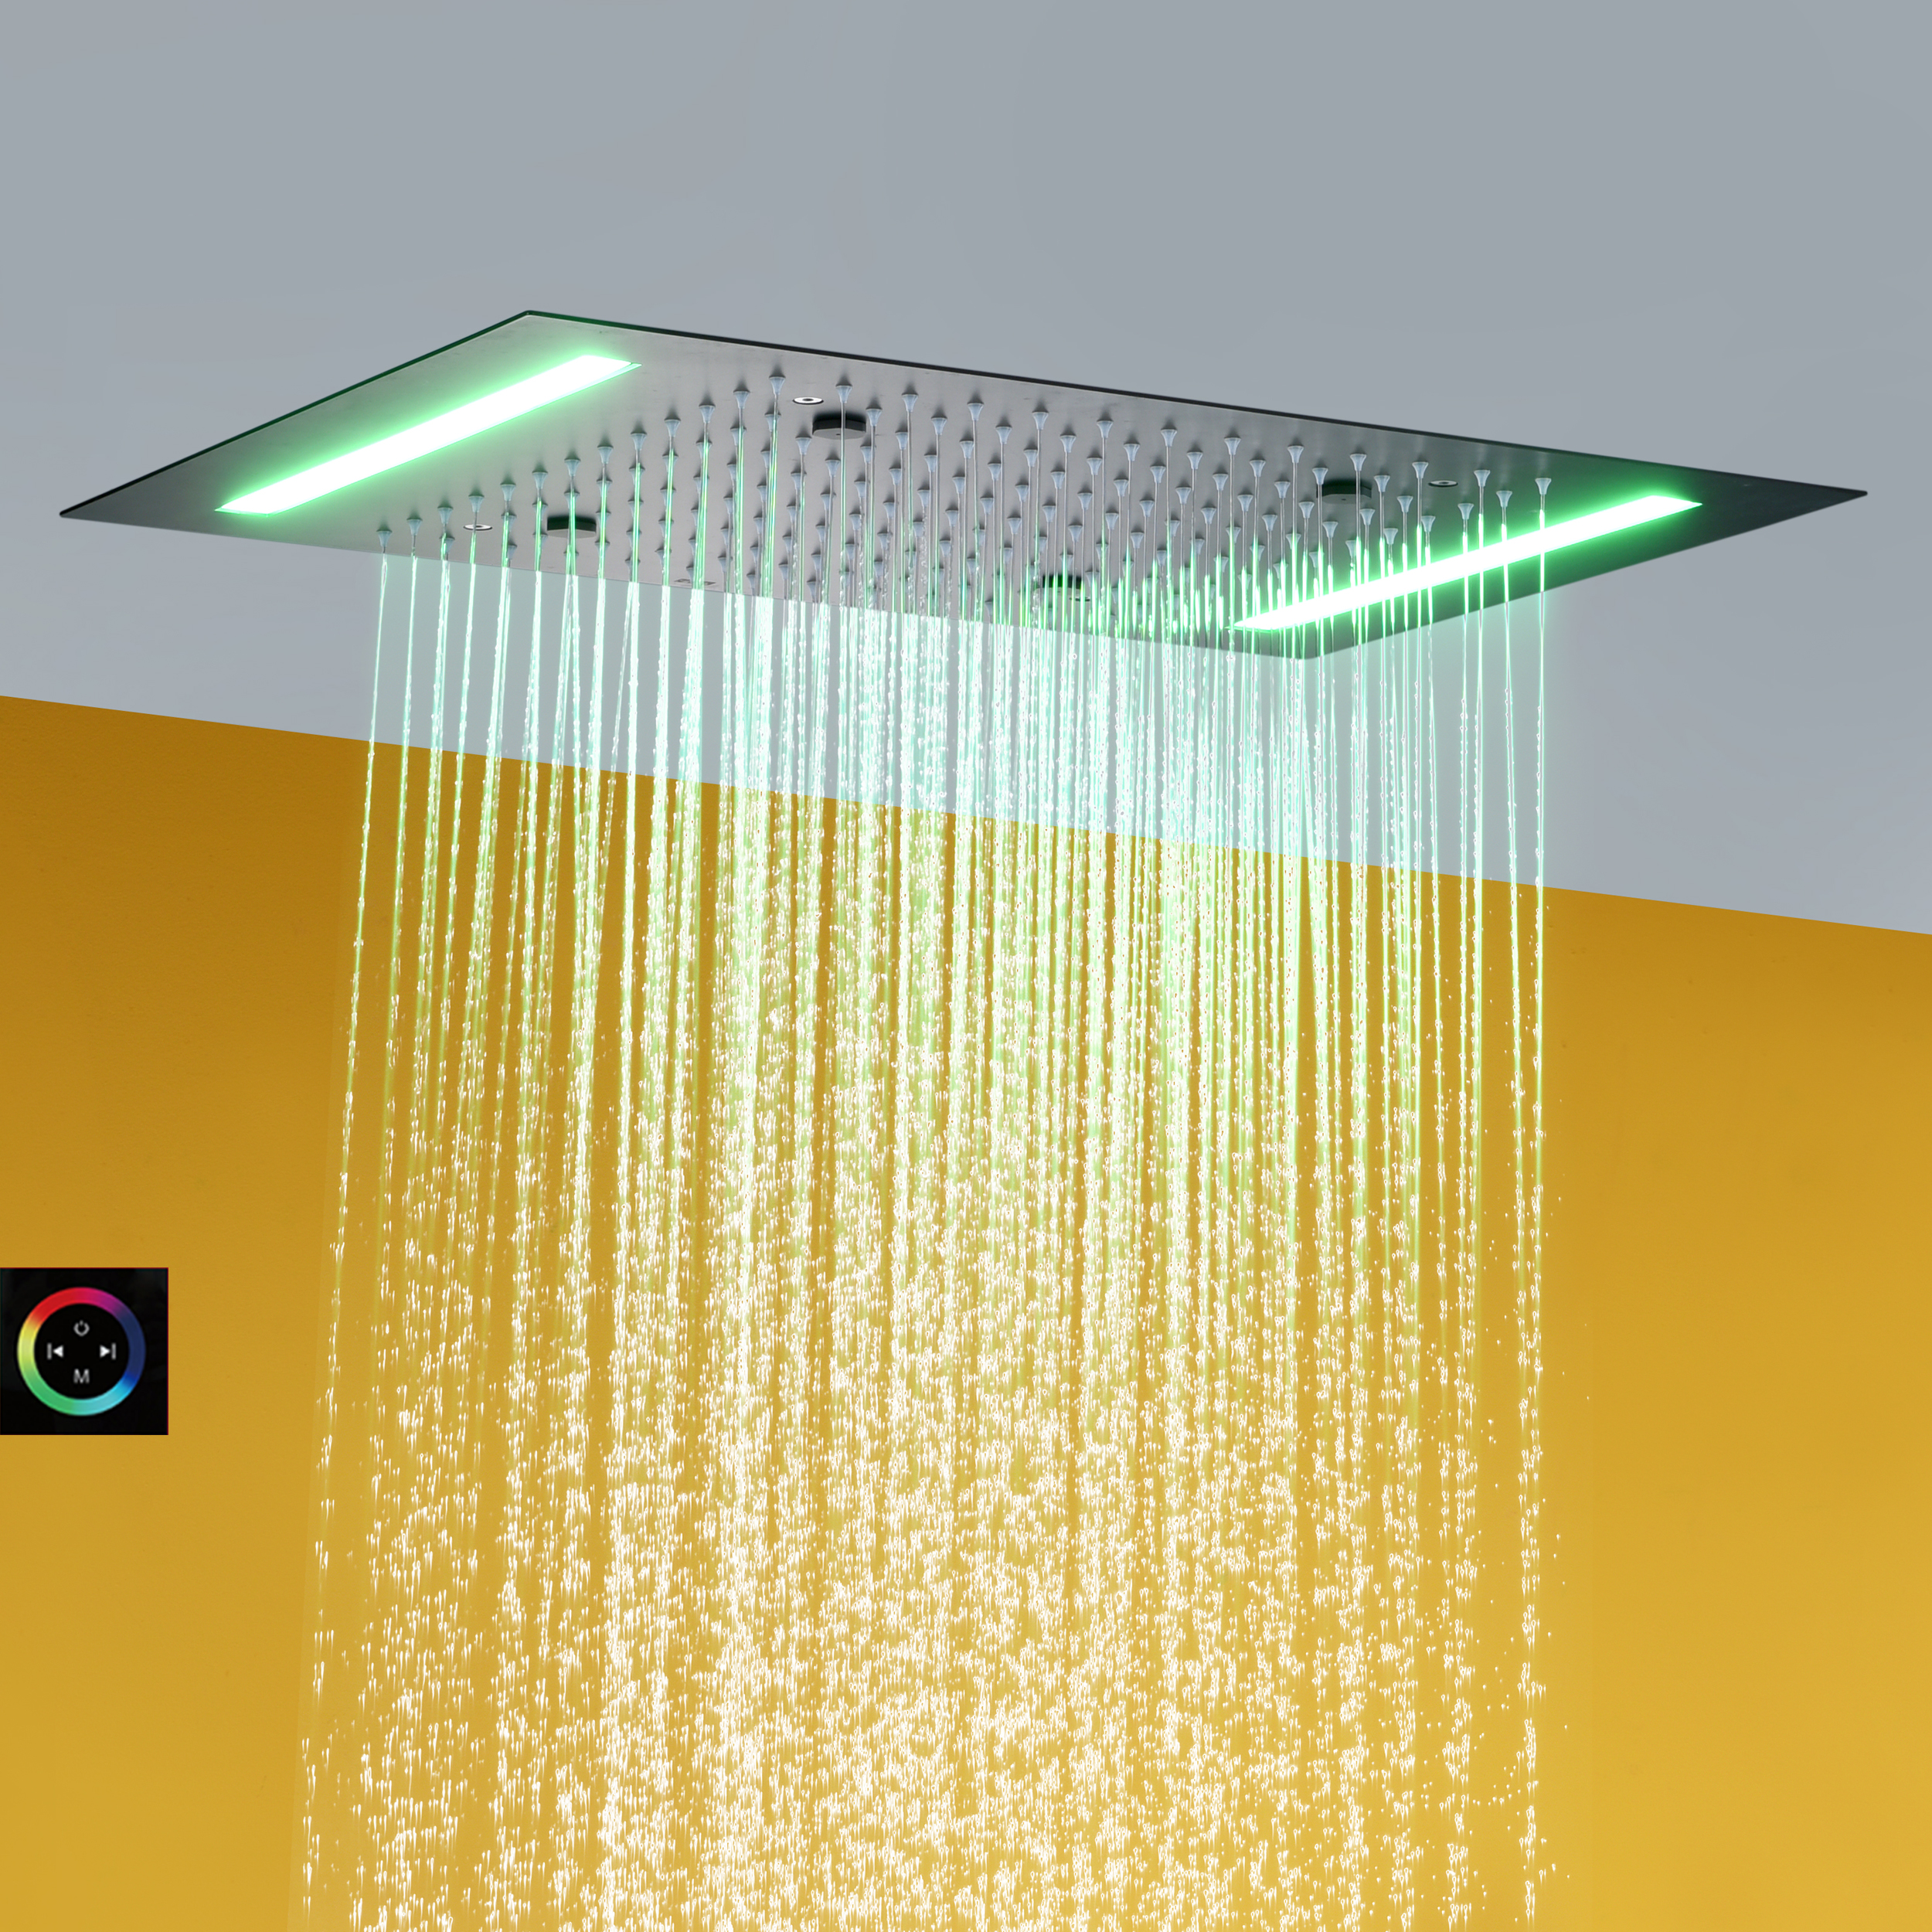 Rain And Atomizing Bathroom Shower Head 100V~240V Alternating Current LED Touch Screen Control Bath Top Shower Mixer Faucet Set